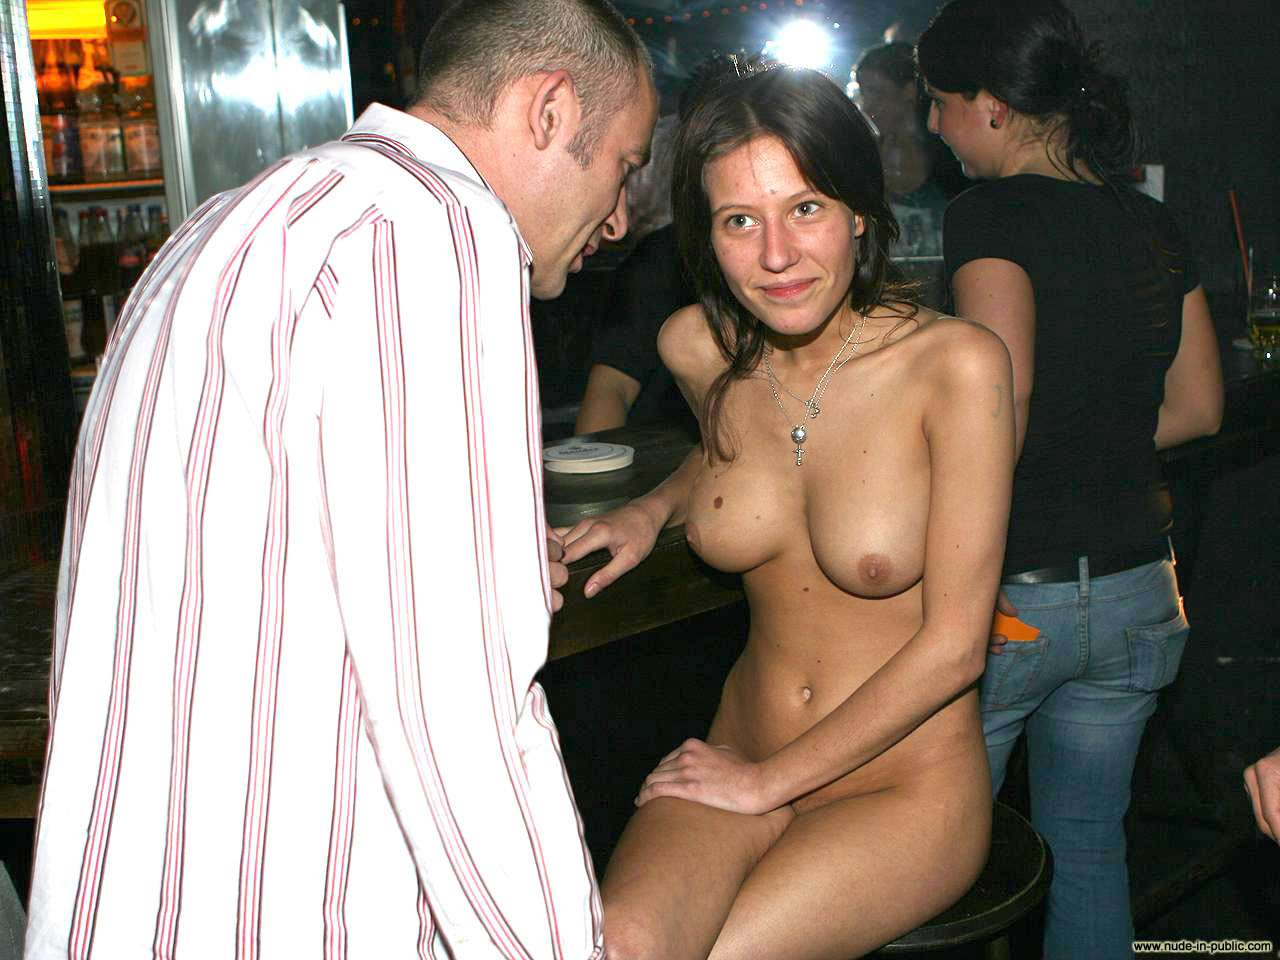 In a bar and later